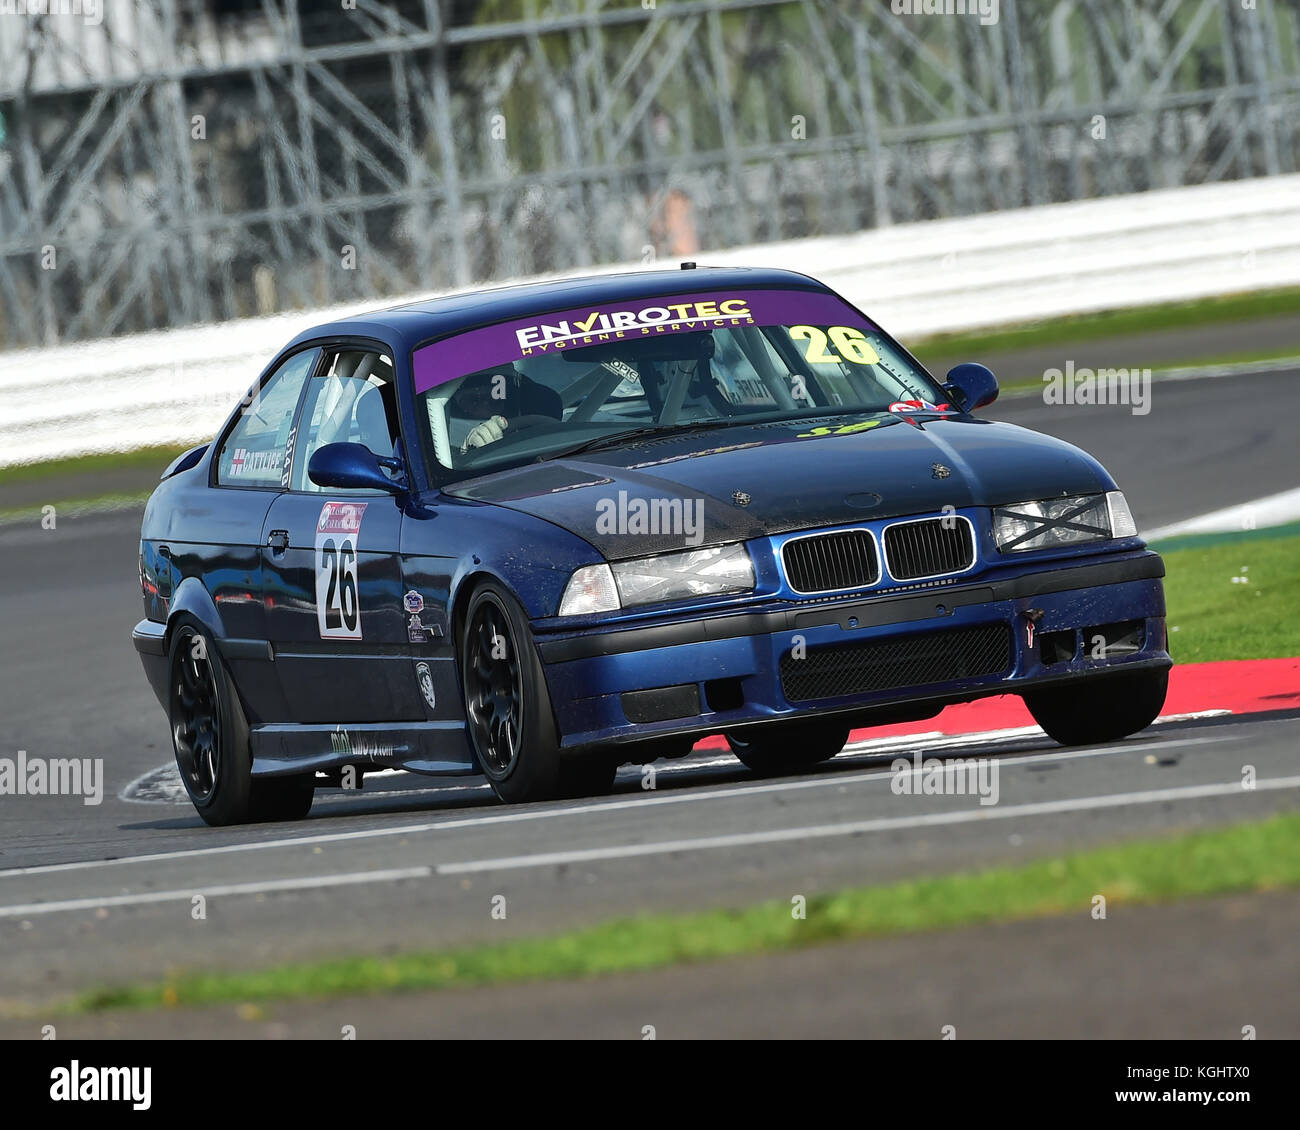 hight resolution of karl cattliff bmw e36 m3 ctcrc pre 93 touring cars pre 2003 touring cars pre 2005 production touring cars 4two cup barc national championship s